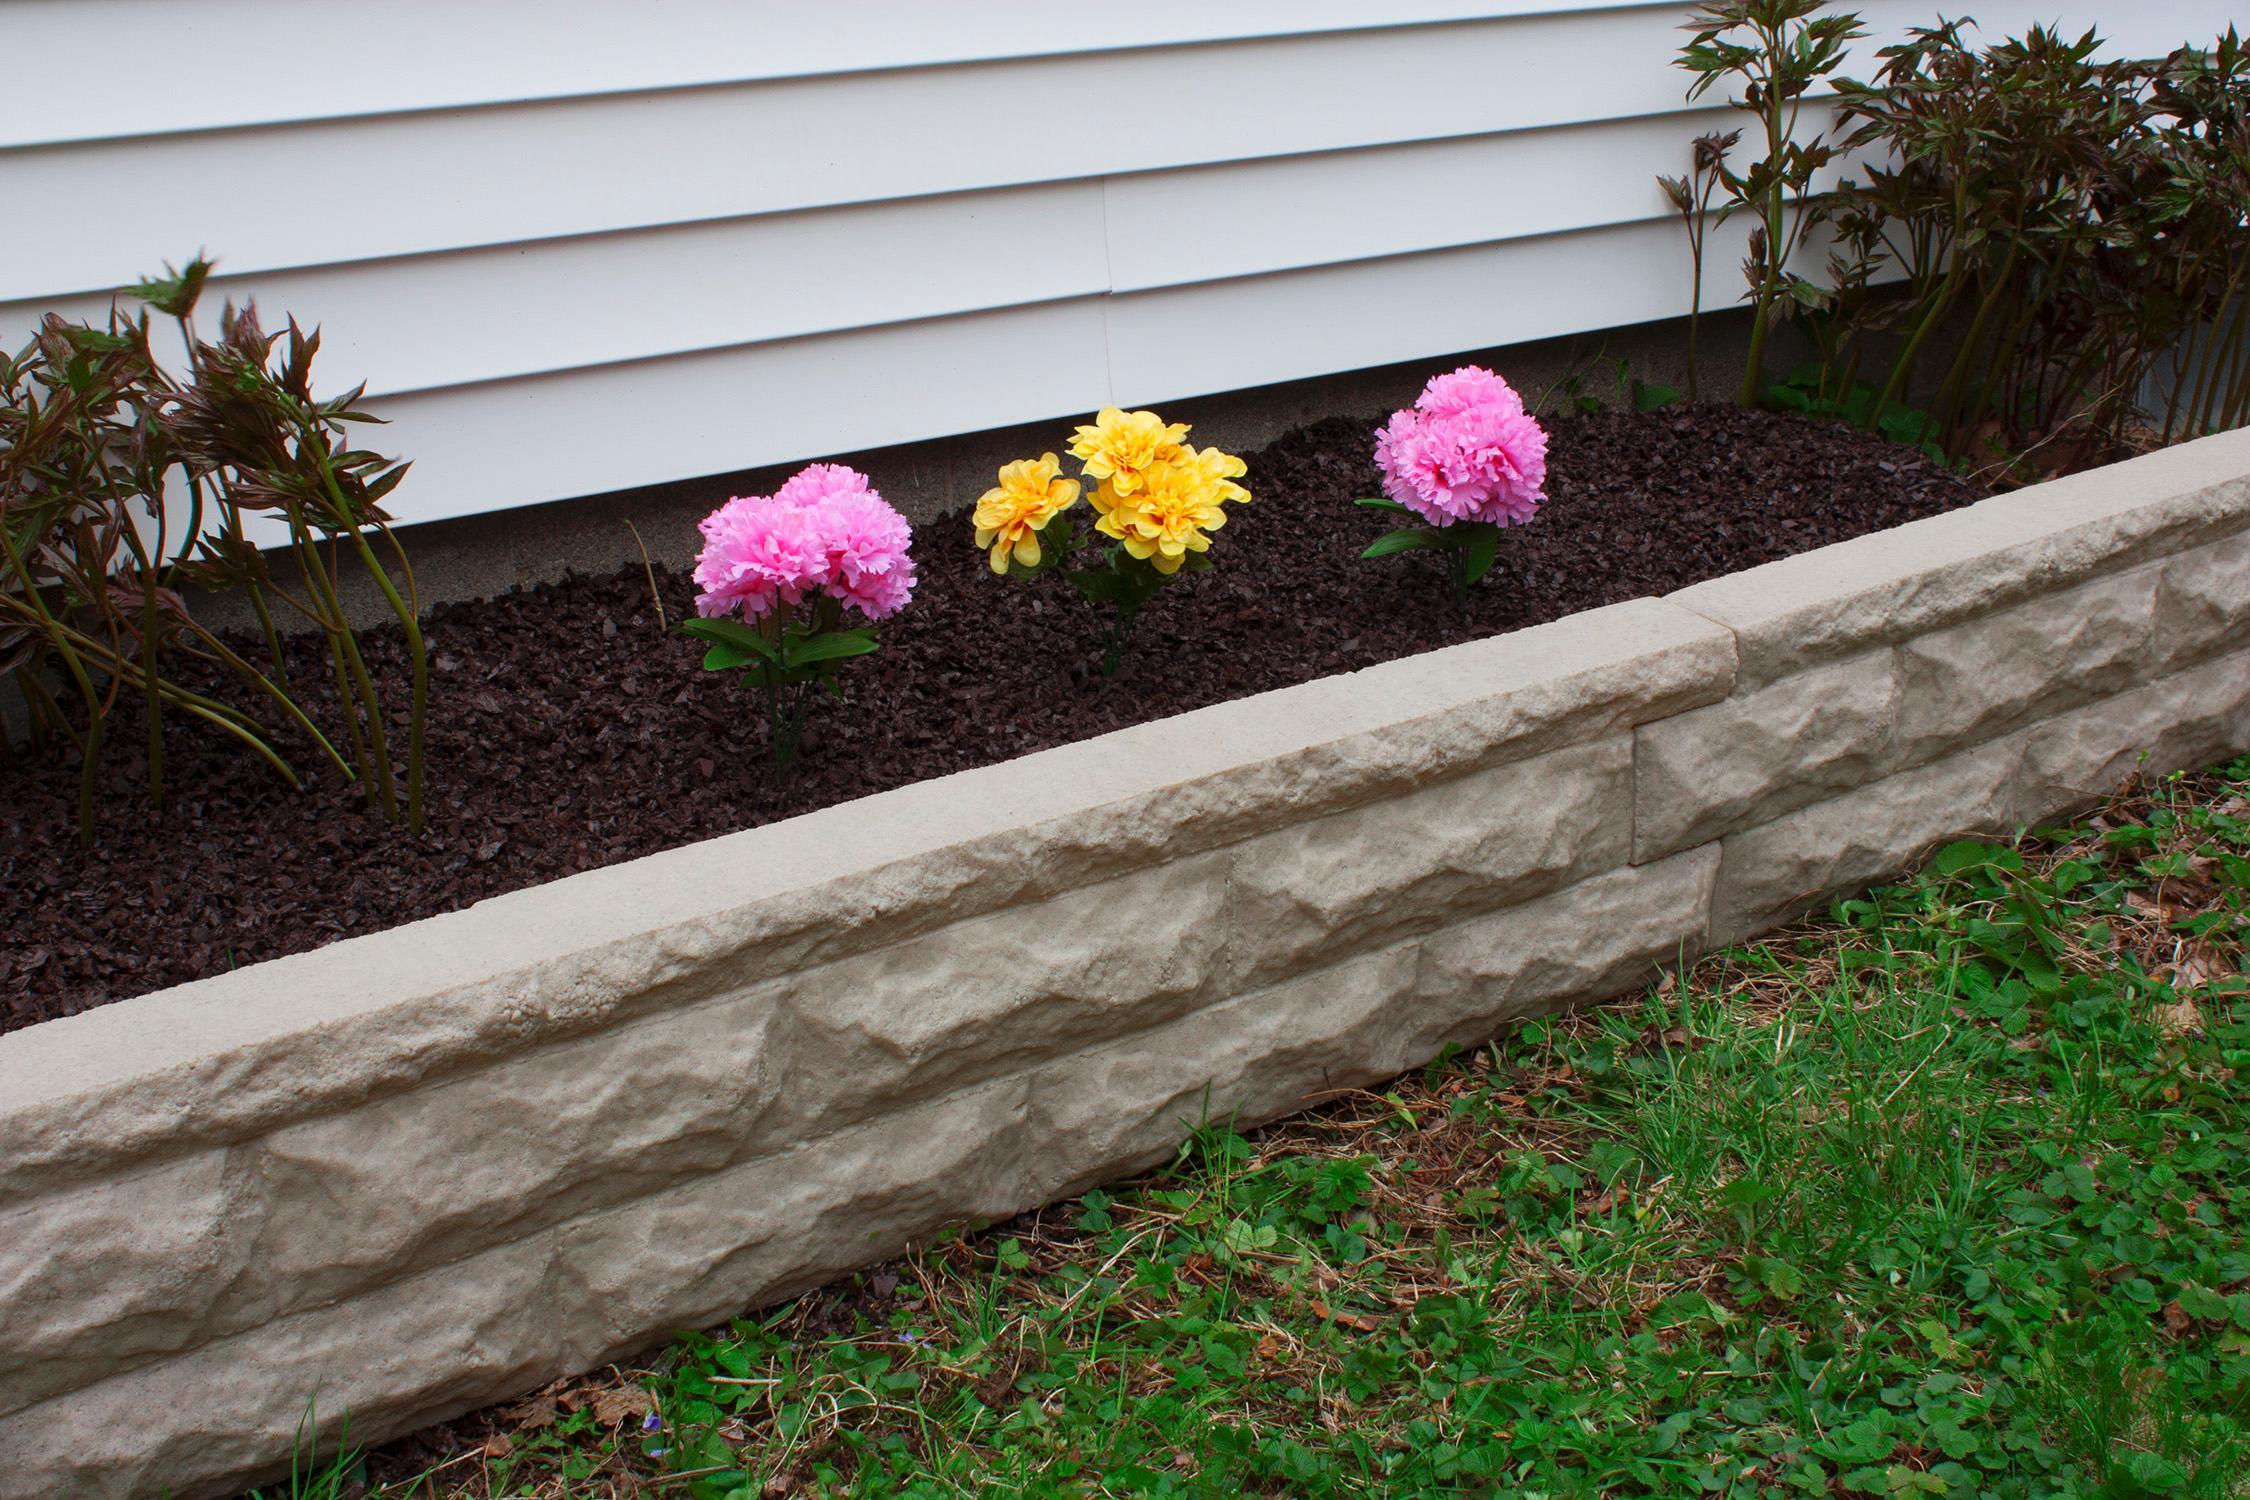 Stone border edging landscape wall brick decorative - Stone edging for garden beds ...